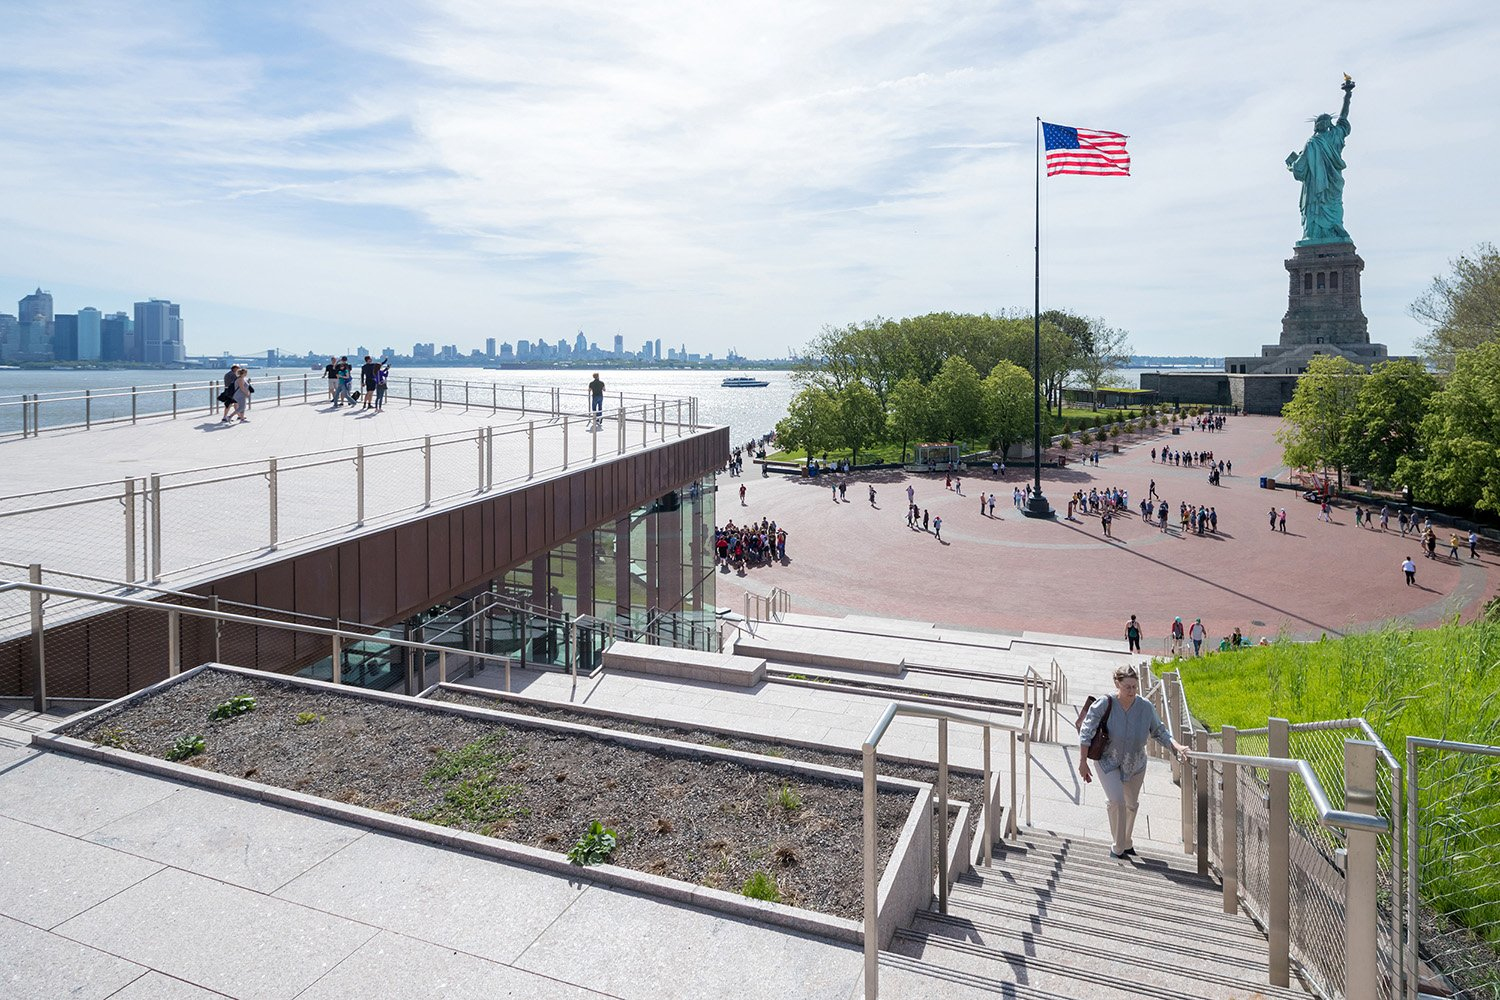 THE STATUE OF LIBERTY MUSEUM